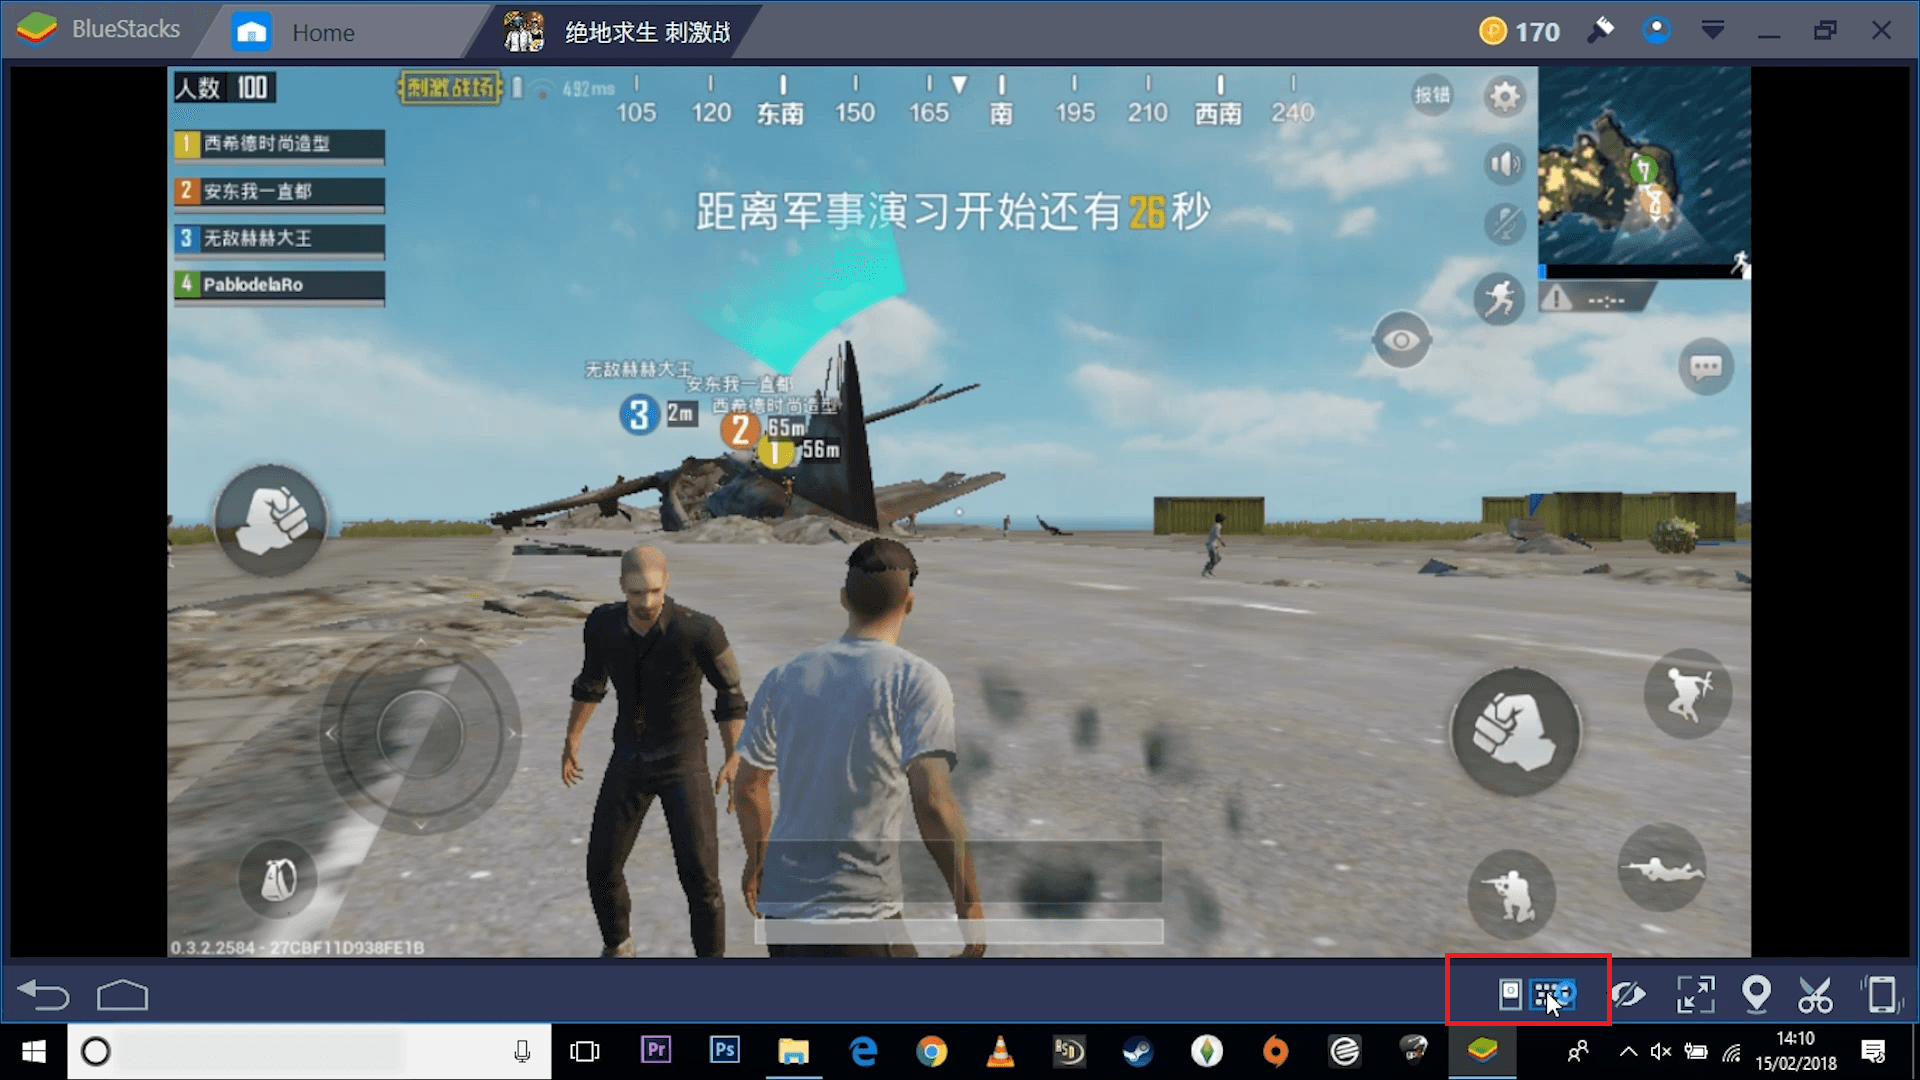 PUBG Bluestacks Controls 1